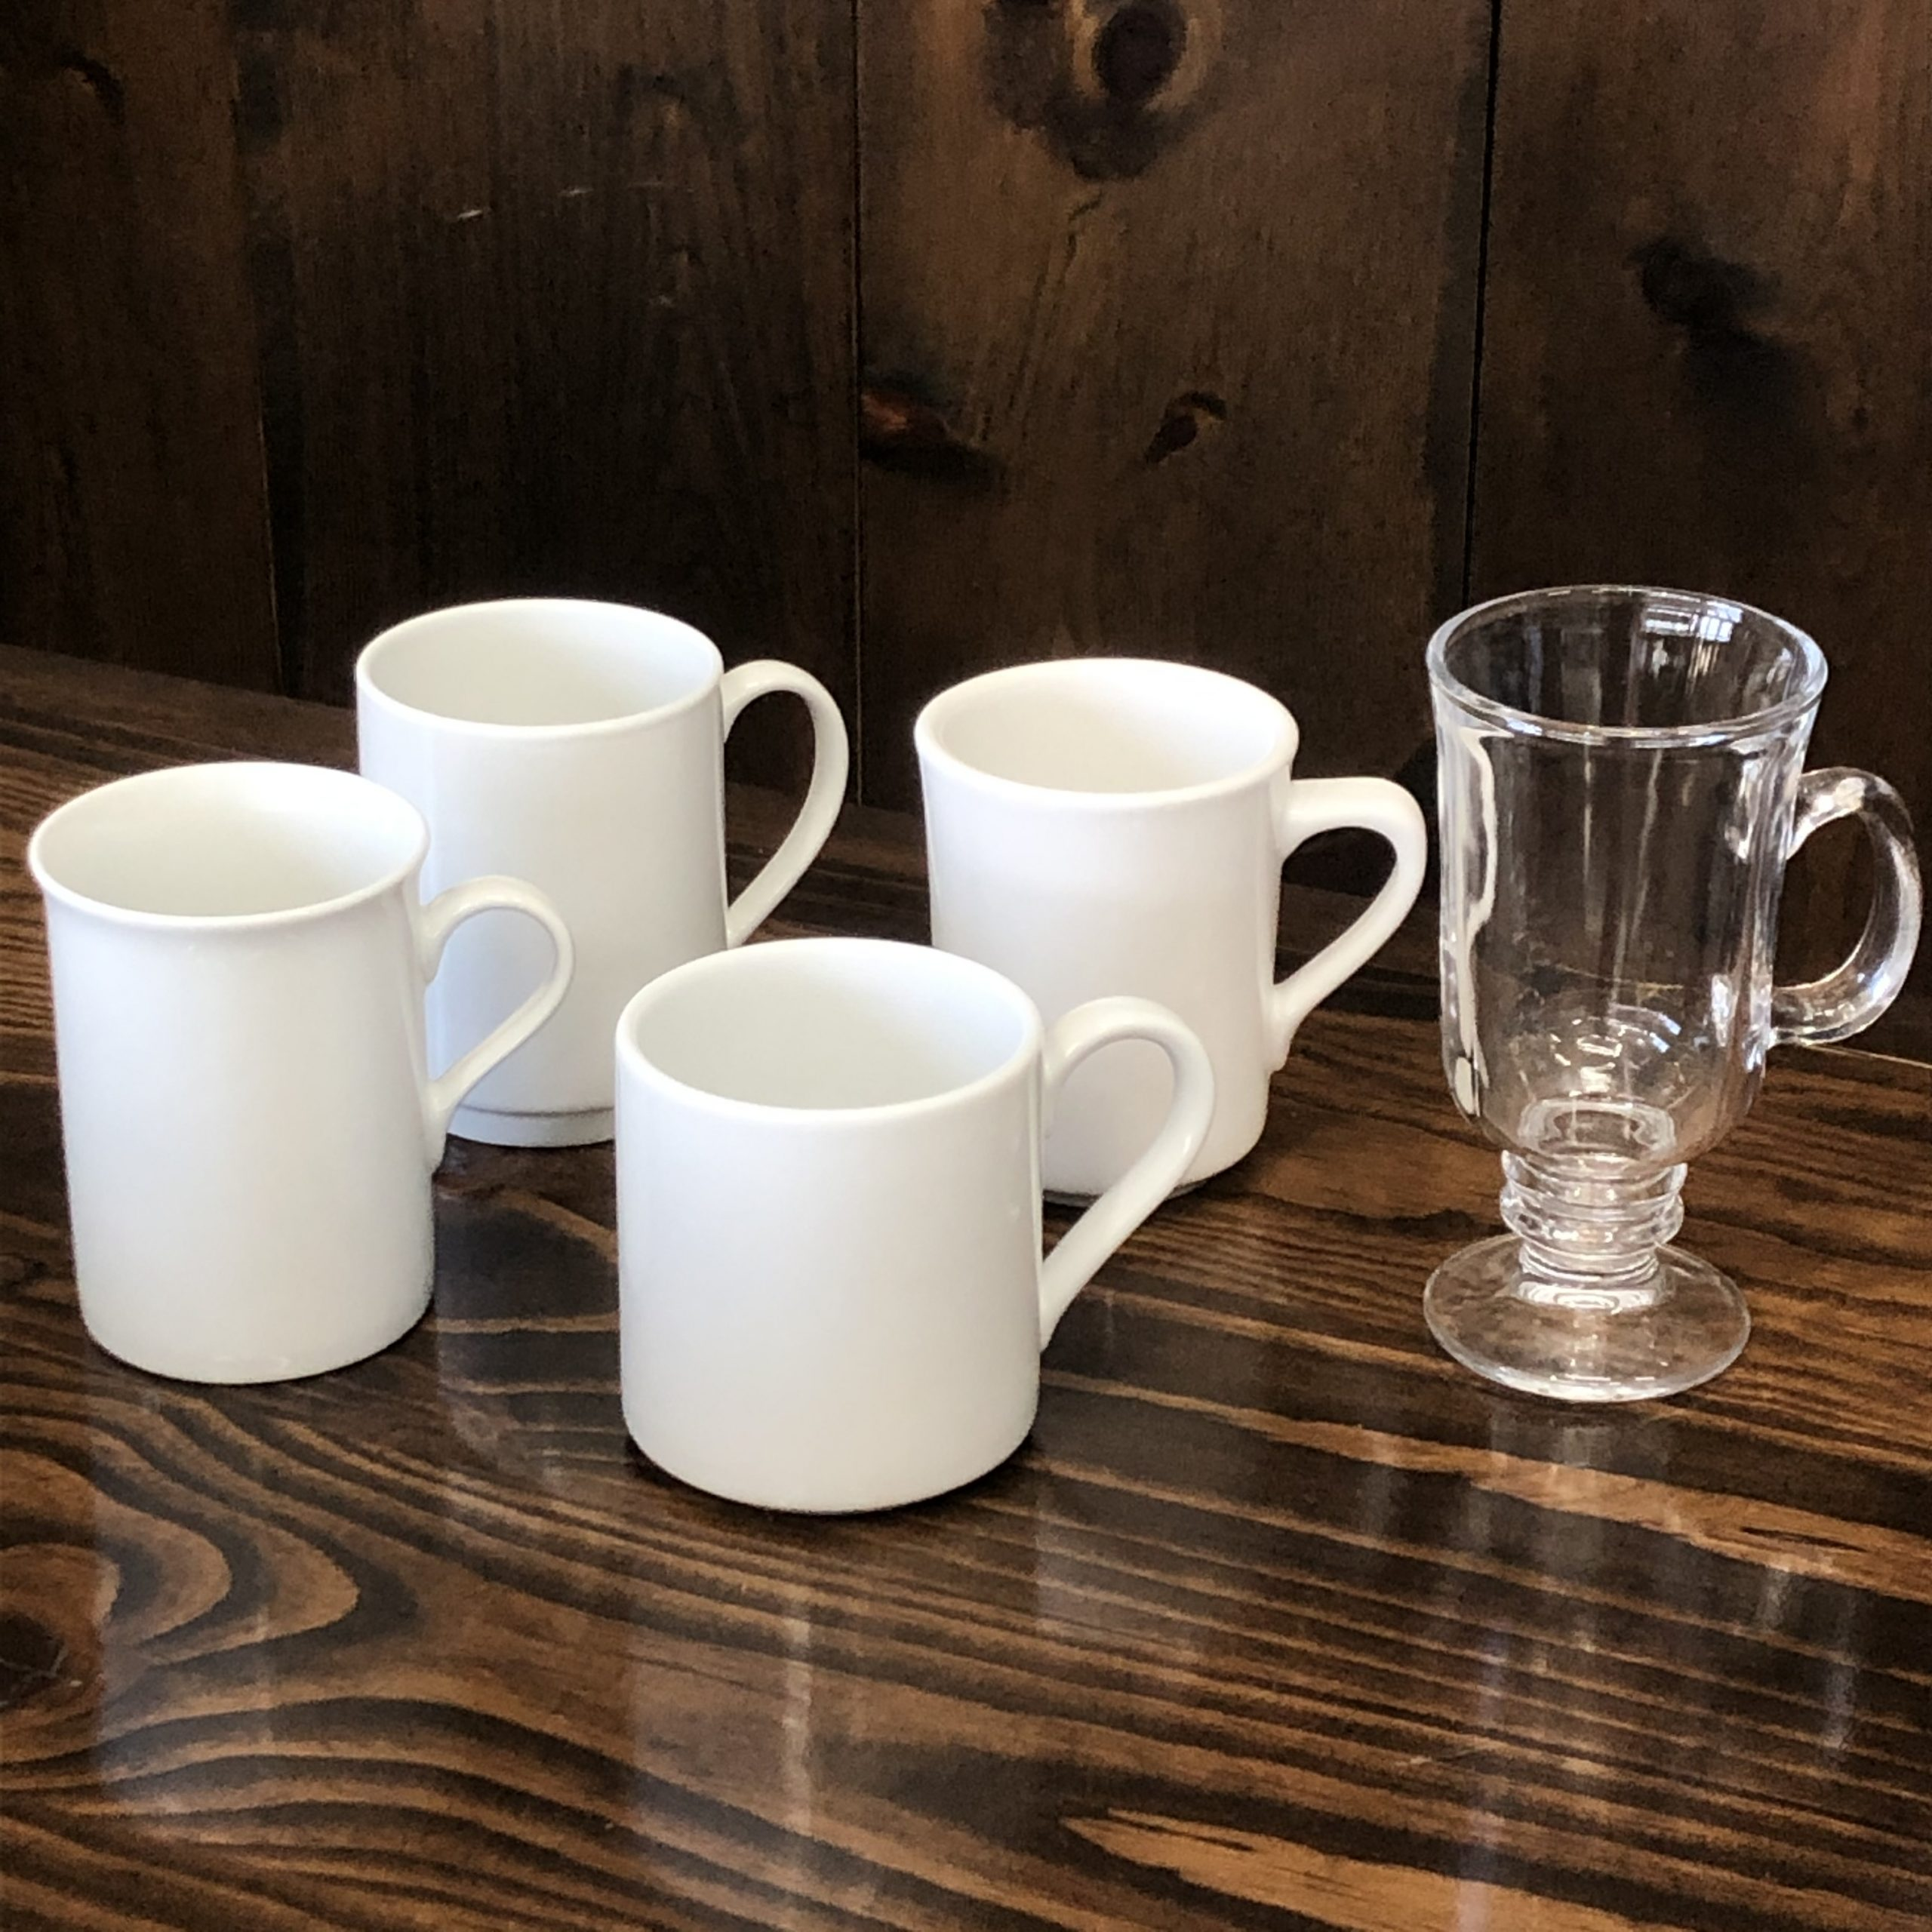 Coffee Mugs Image